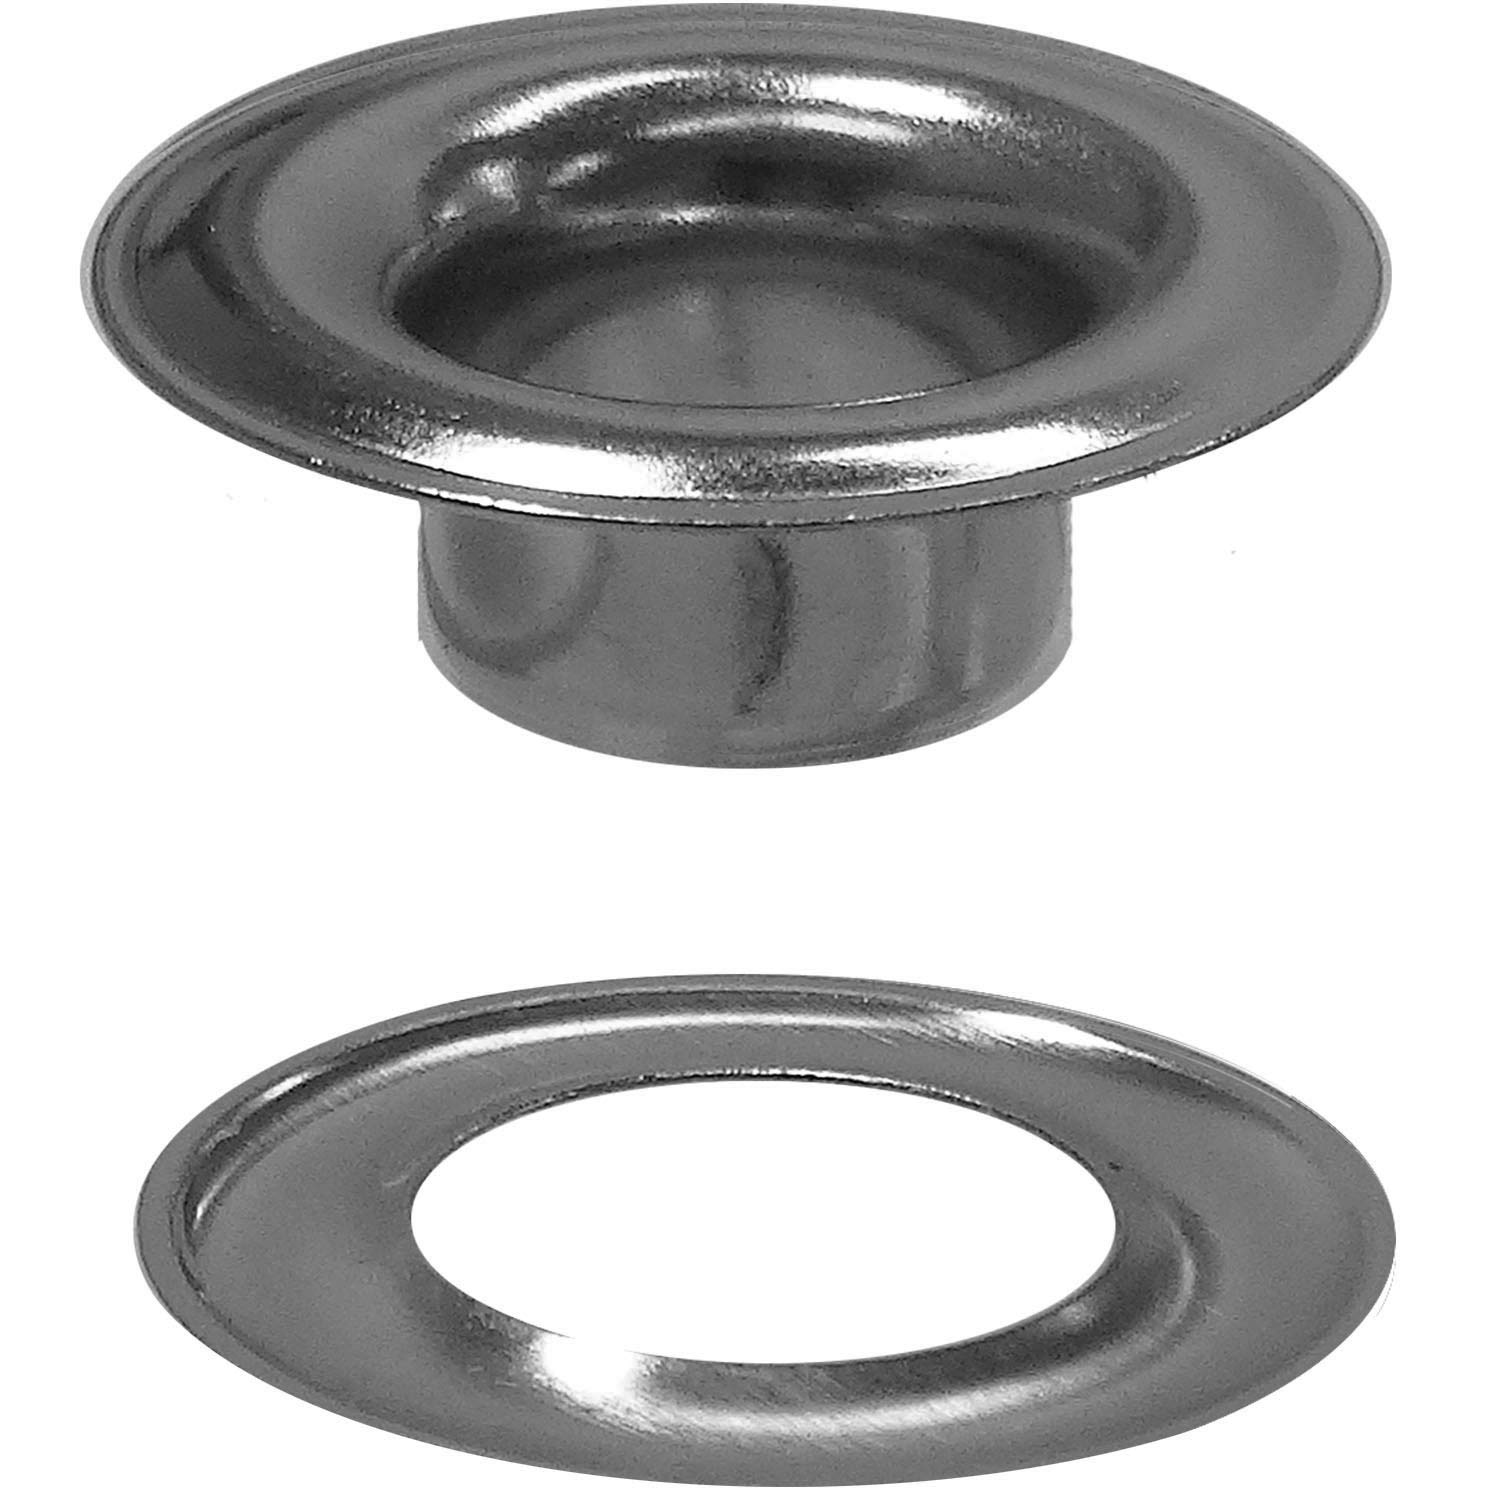 Stimpson Sheet Metal Grommet and Washer Marine Grade Stainless Steel Durable, Reliable, Heavy-Duty #4 Set (500 Pieces of Each)